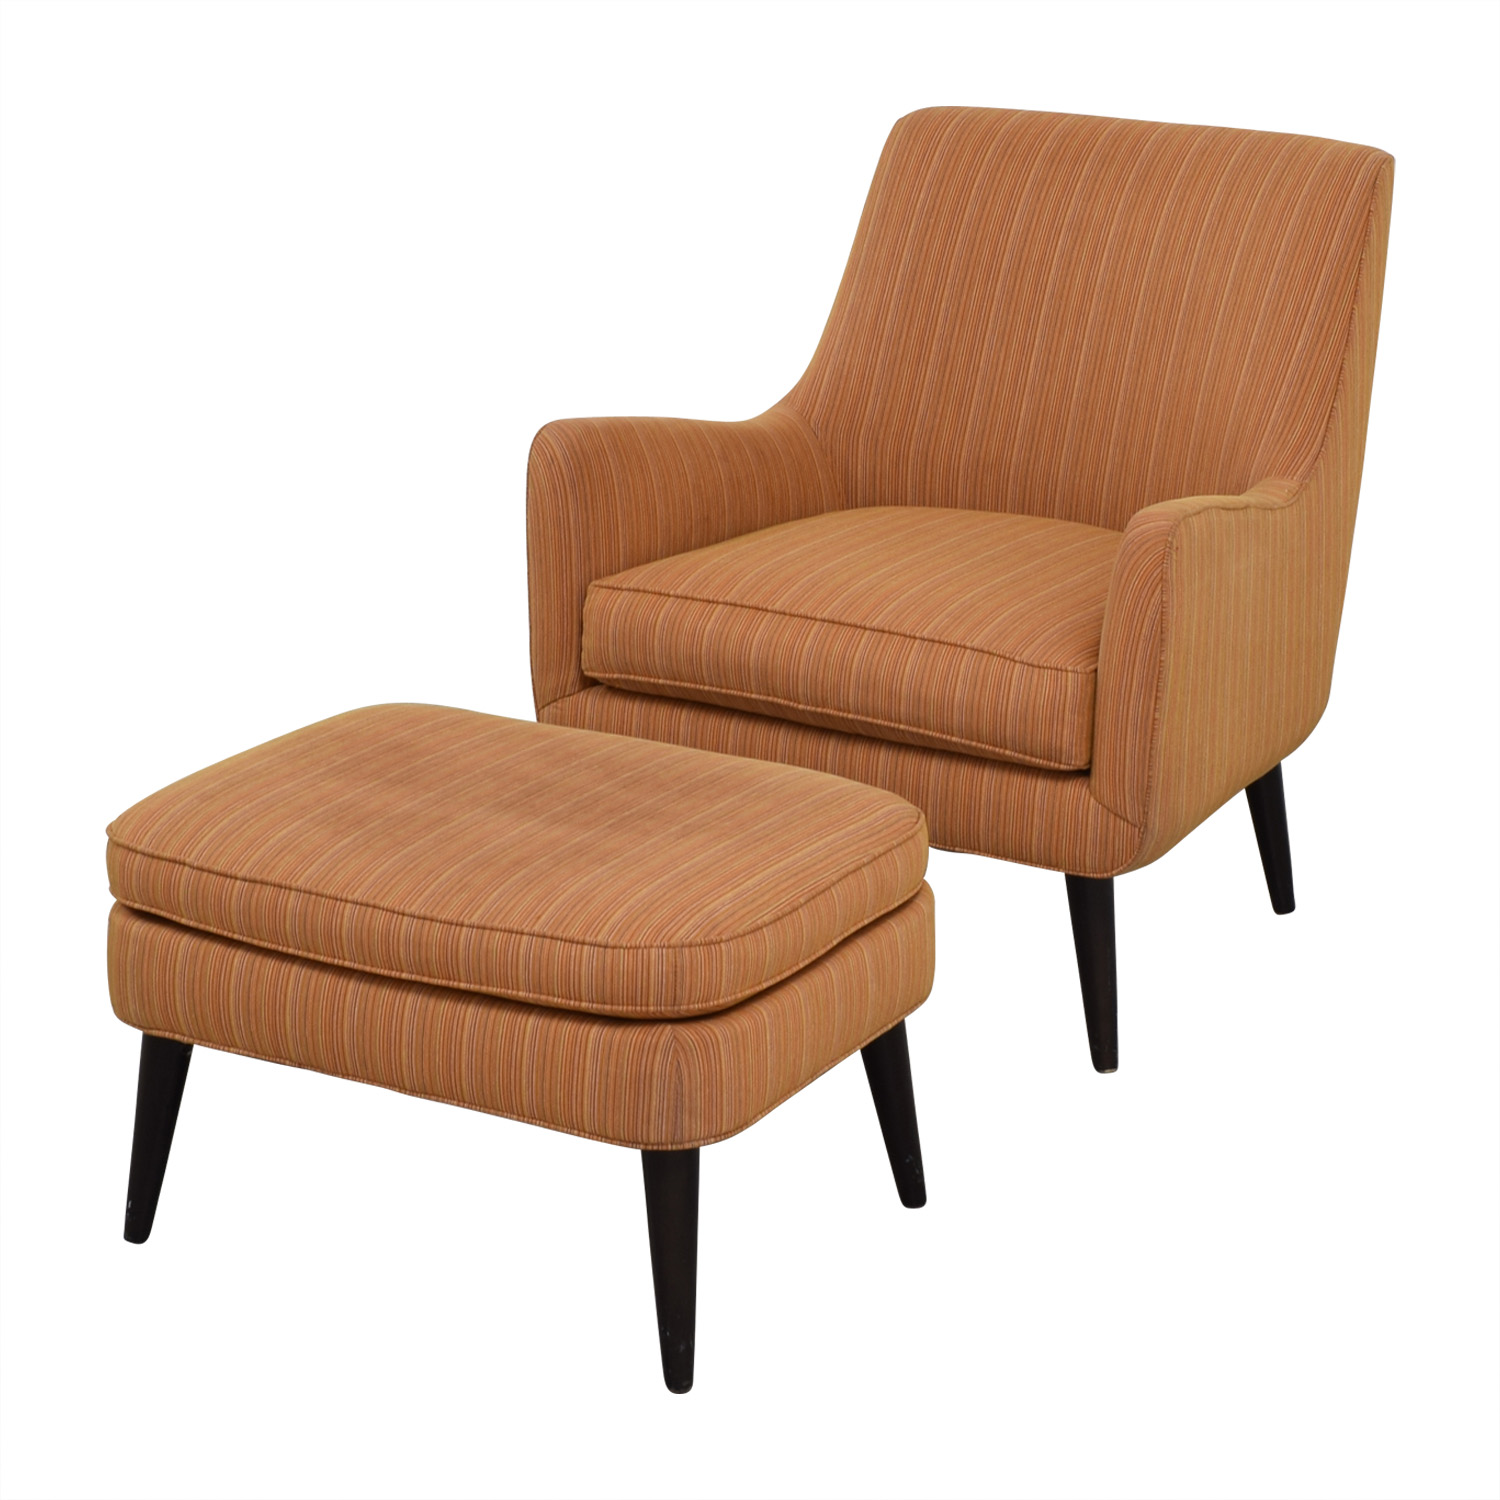 Room & Board Room & Board Orange Striped Lounge Chair & Ottoman coupon